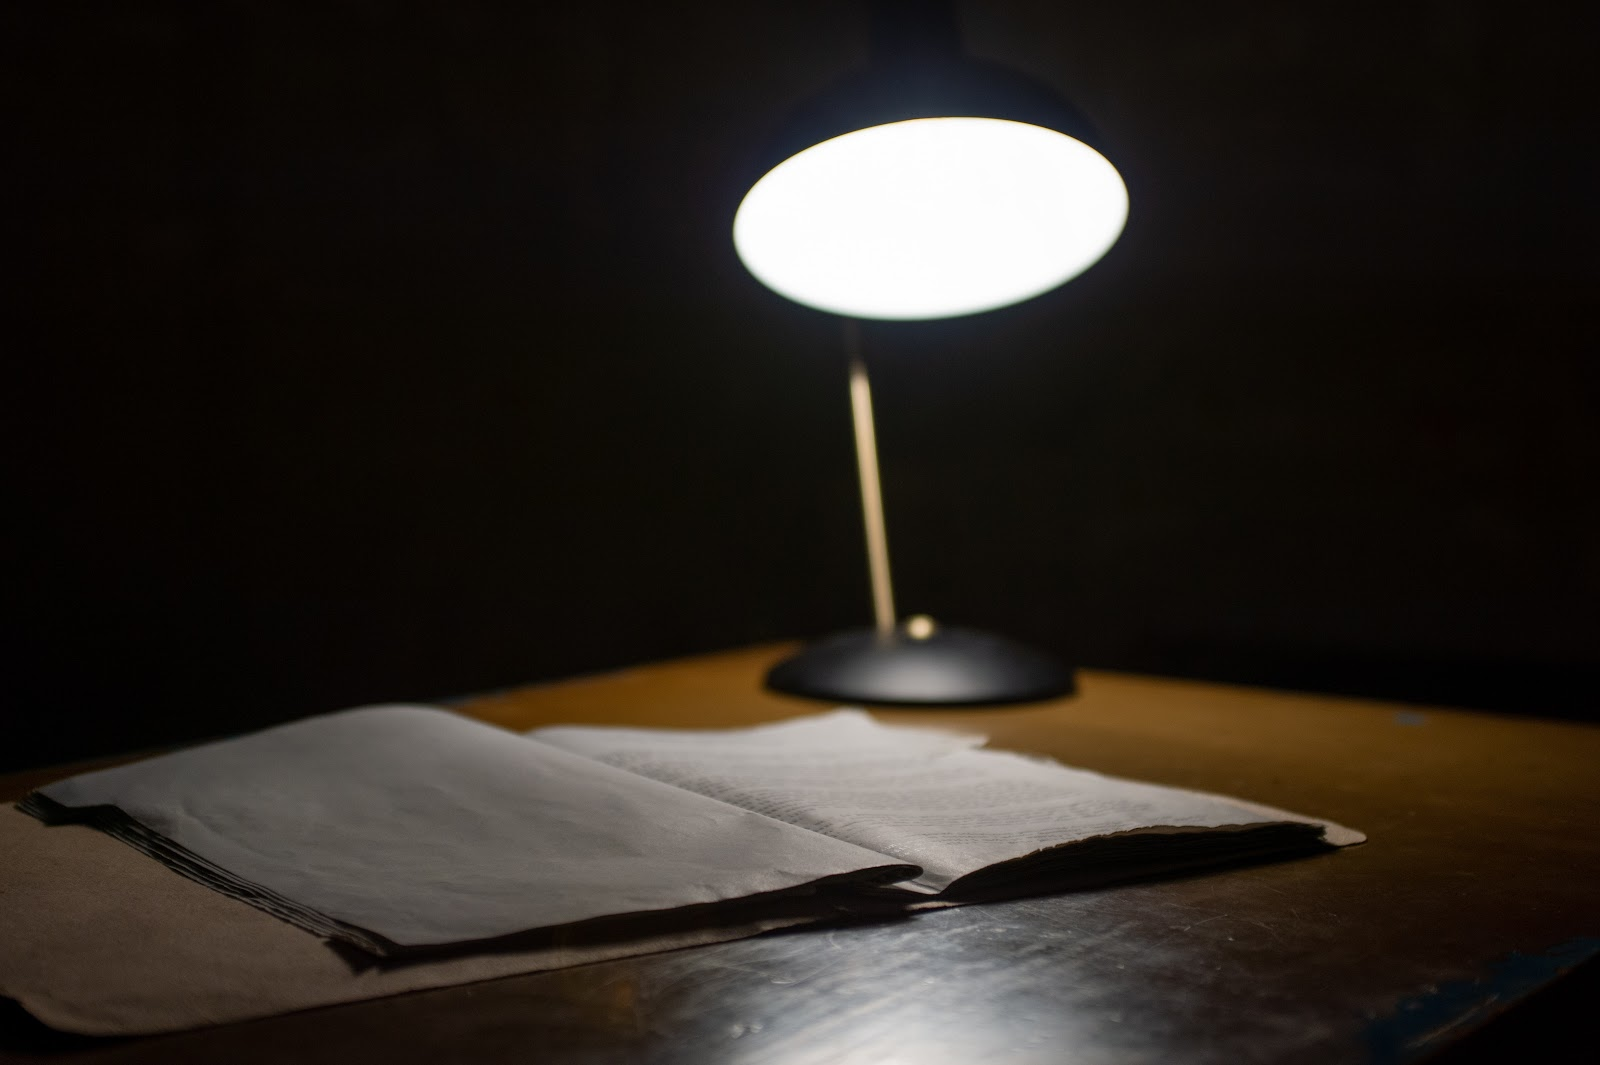 Dark room with open notebook on table underneath bright lamp